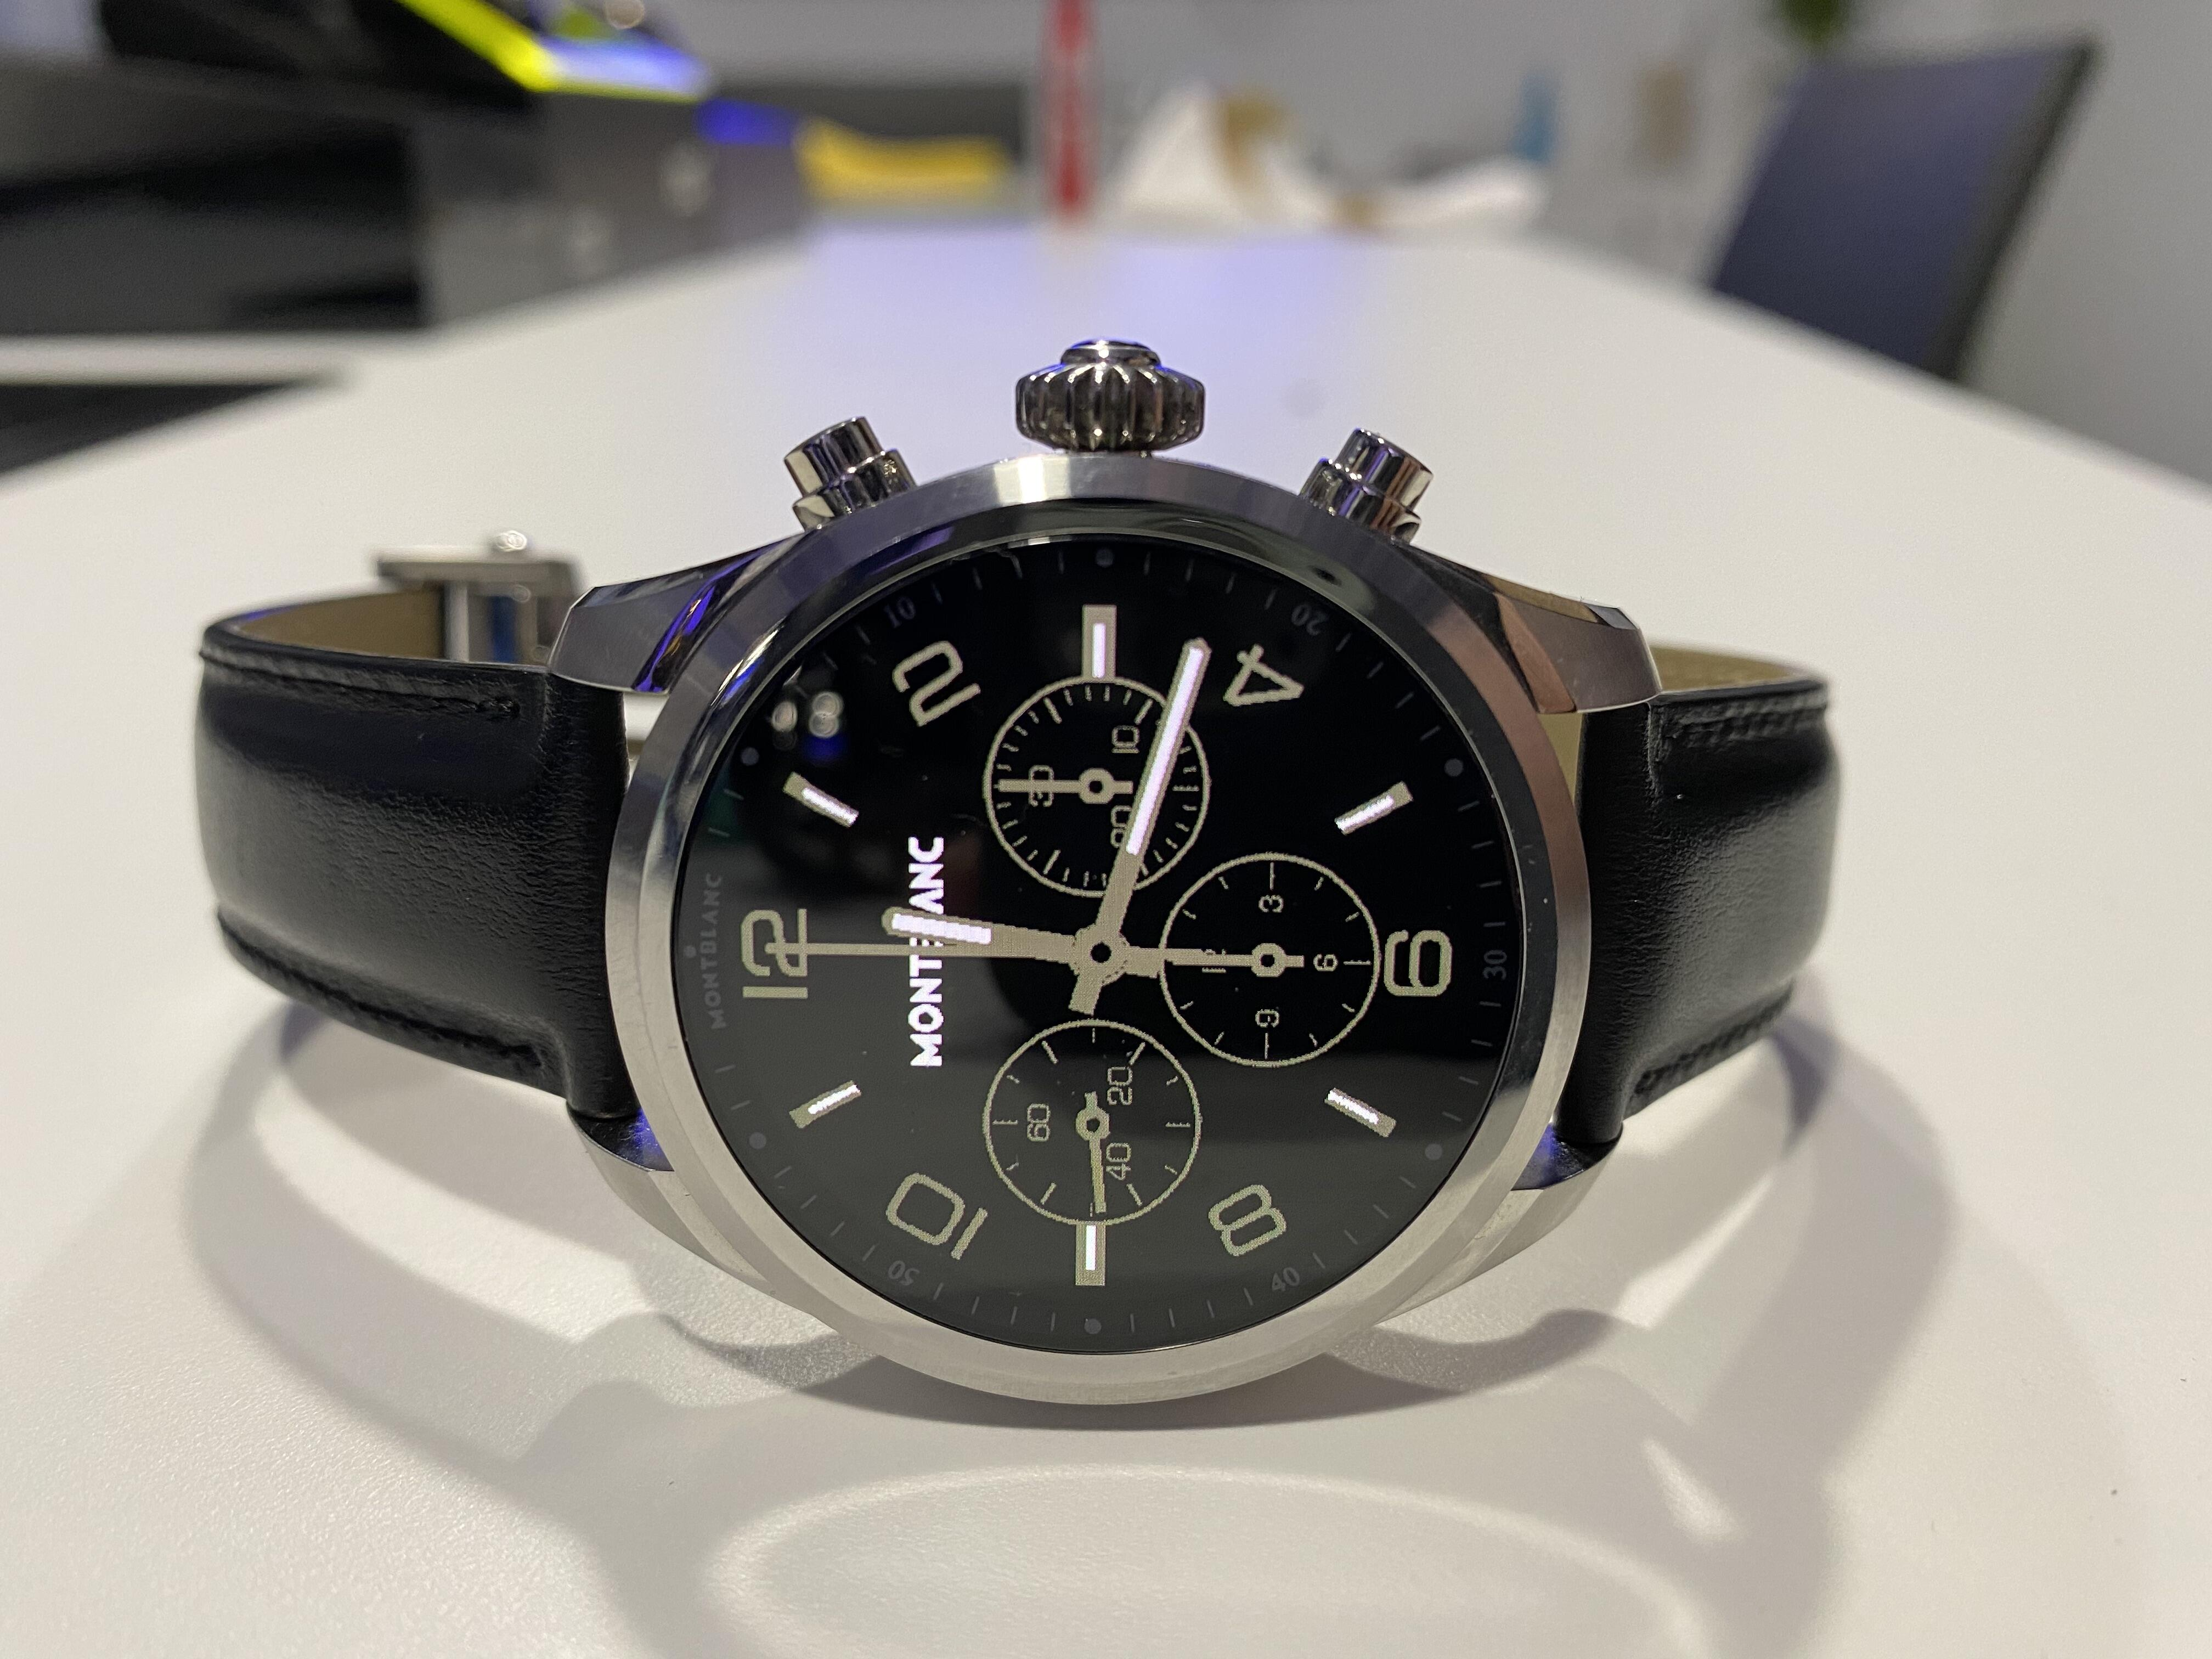 <p>Montblanc's newest eSIM cellular WearOS watch hints at more eSIM watches to come.</p>